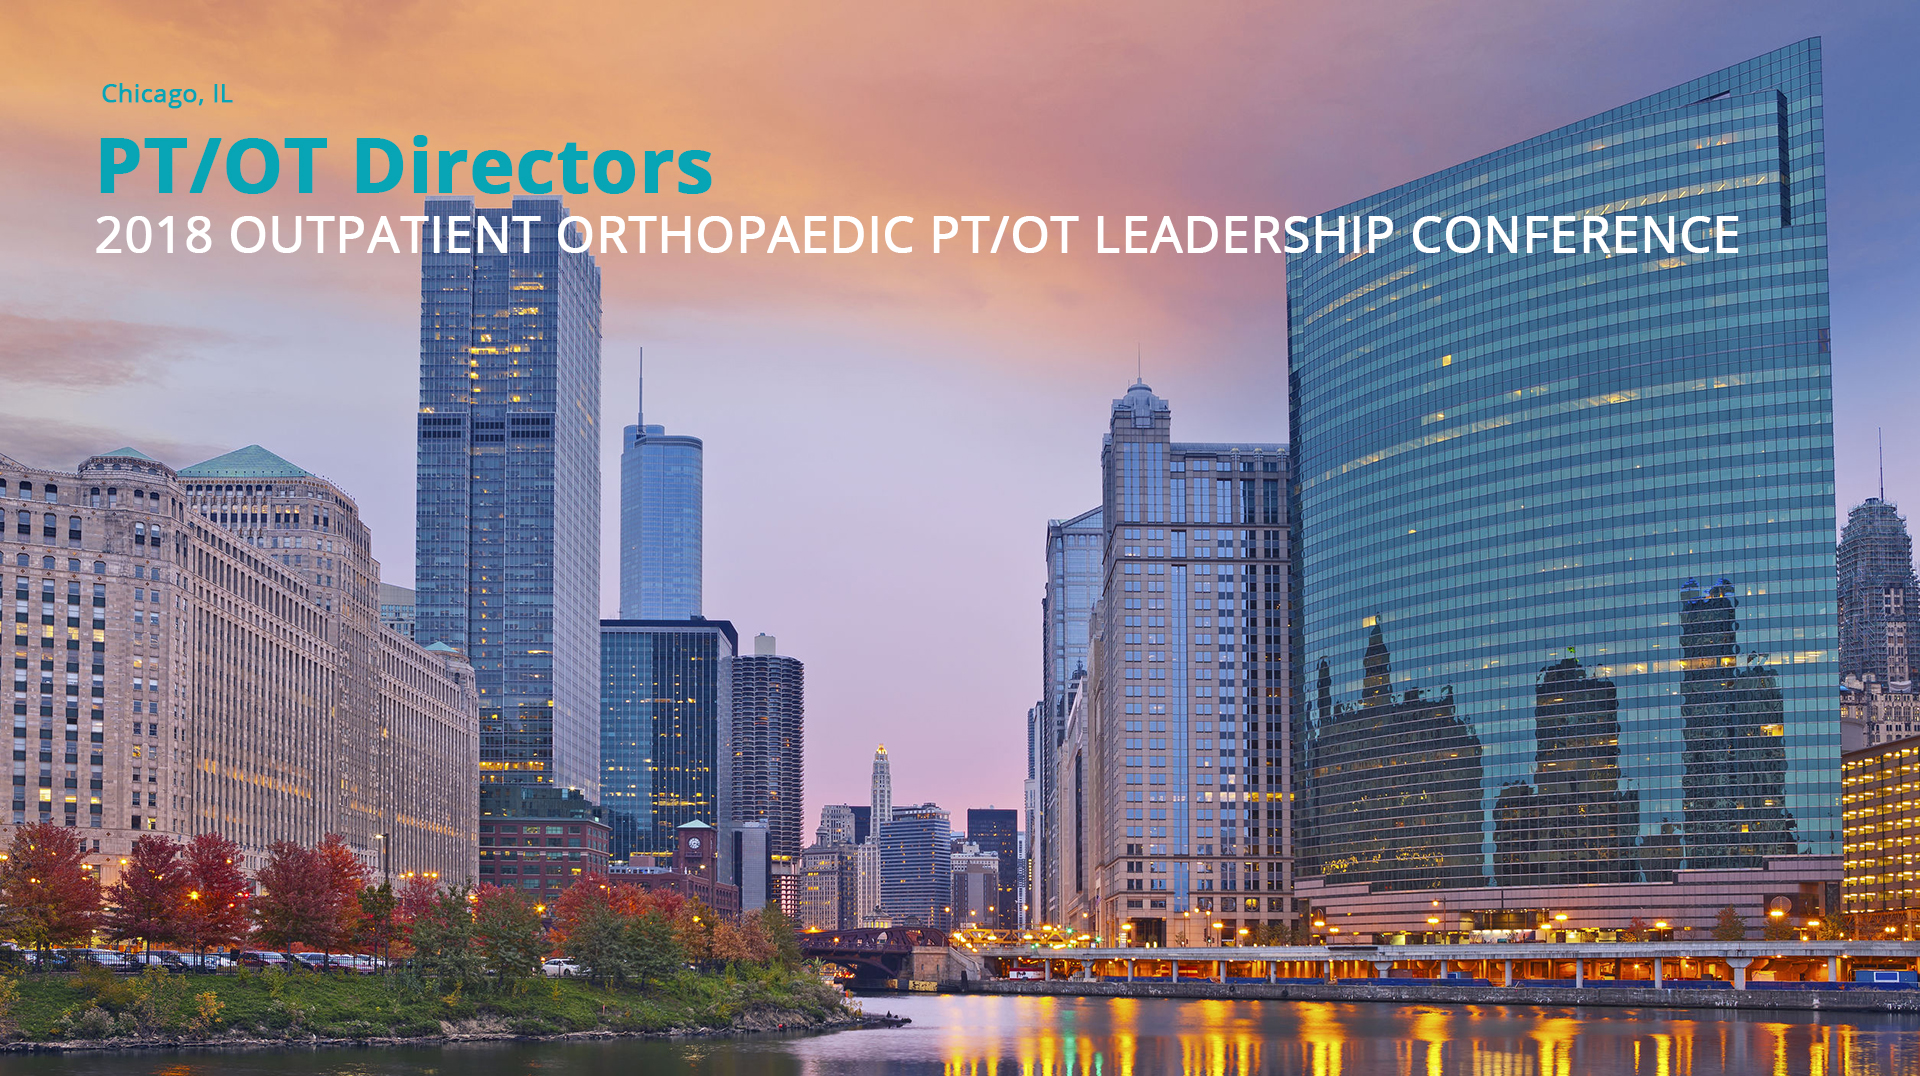 2018 OUTPATIENT ORTHOPAEDIC PT/OT LEADERSHIP CONFERENCE